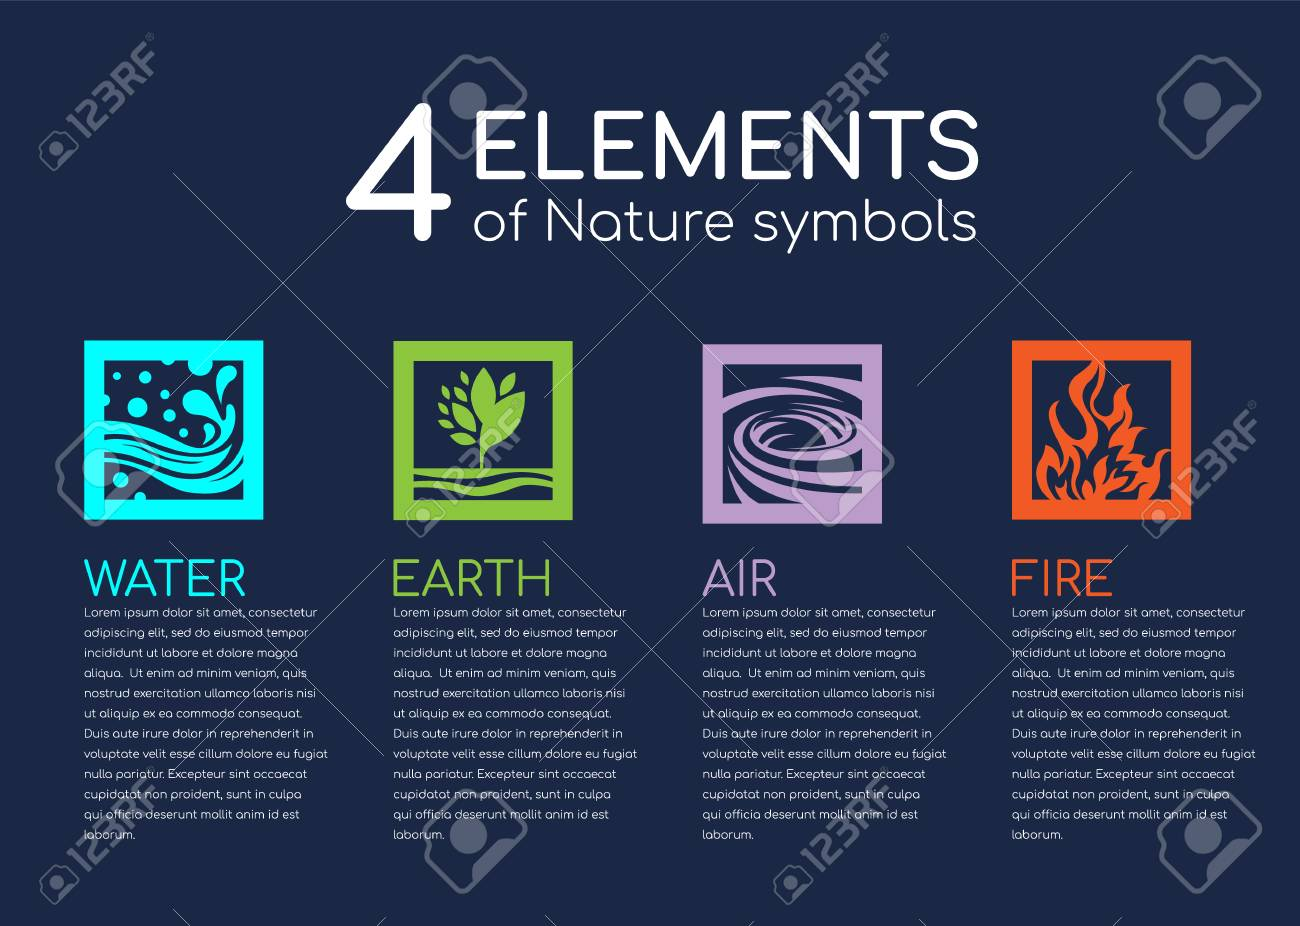 Nature 4 Elements Of Nature Symblos With Water Fire Earth And Air In Square